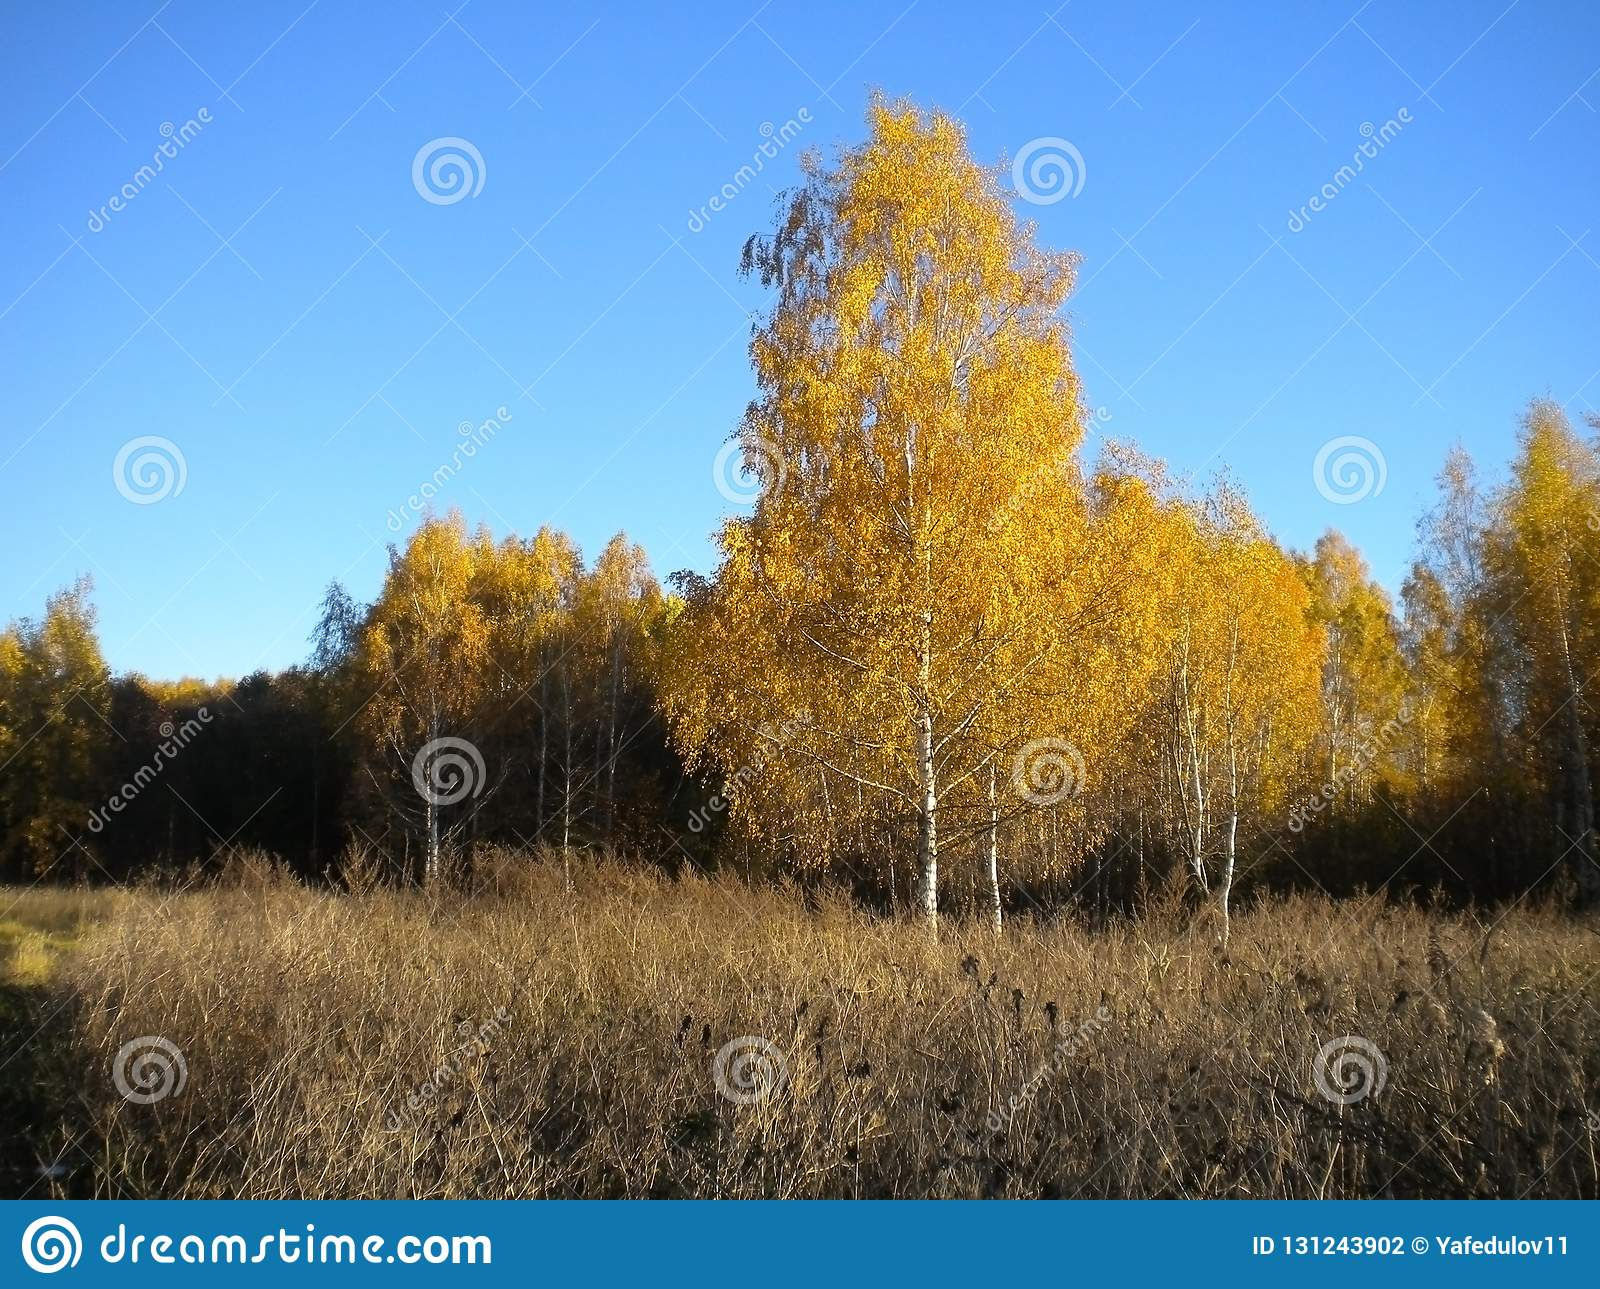 Blue bright sky, autumn, yellow trees, dried grass in the meadow